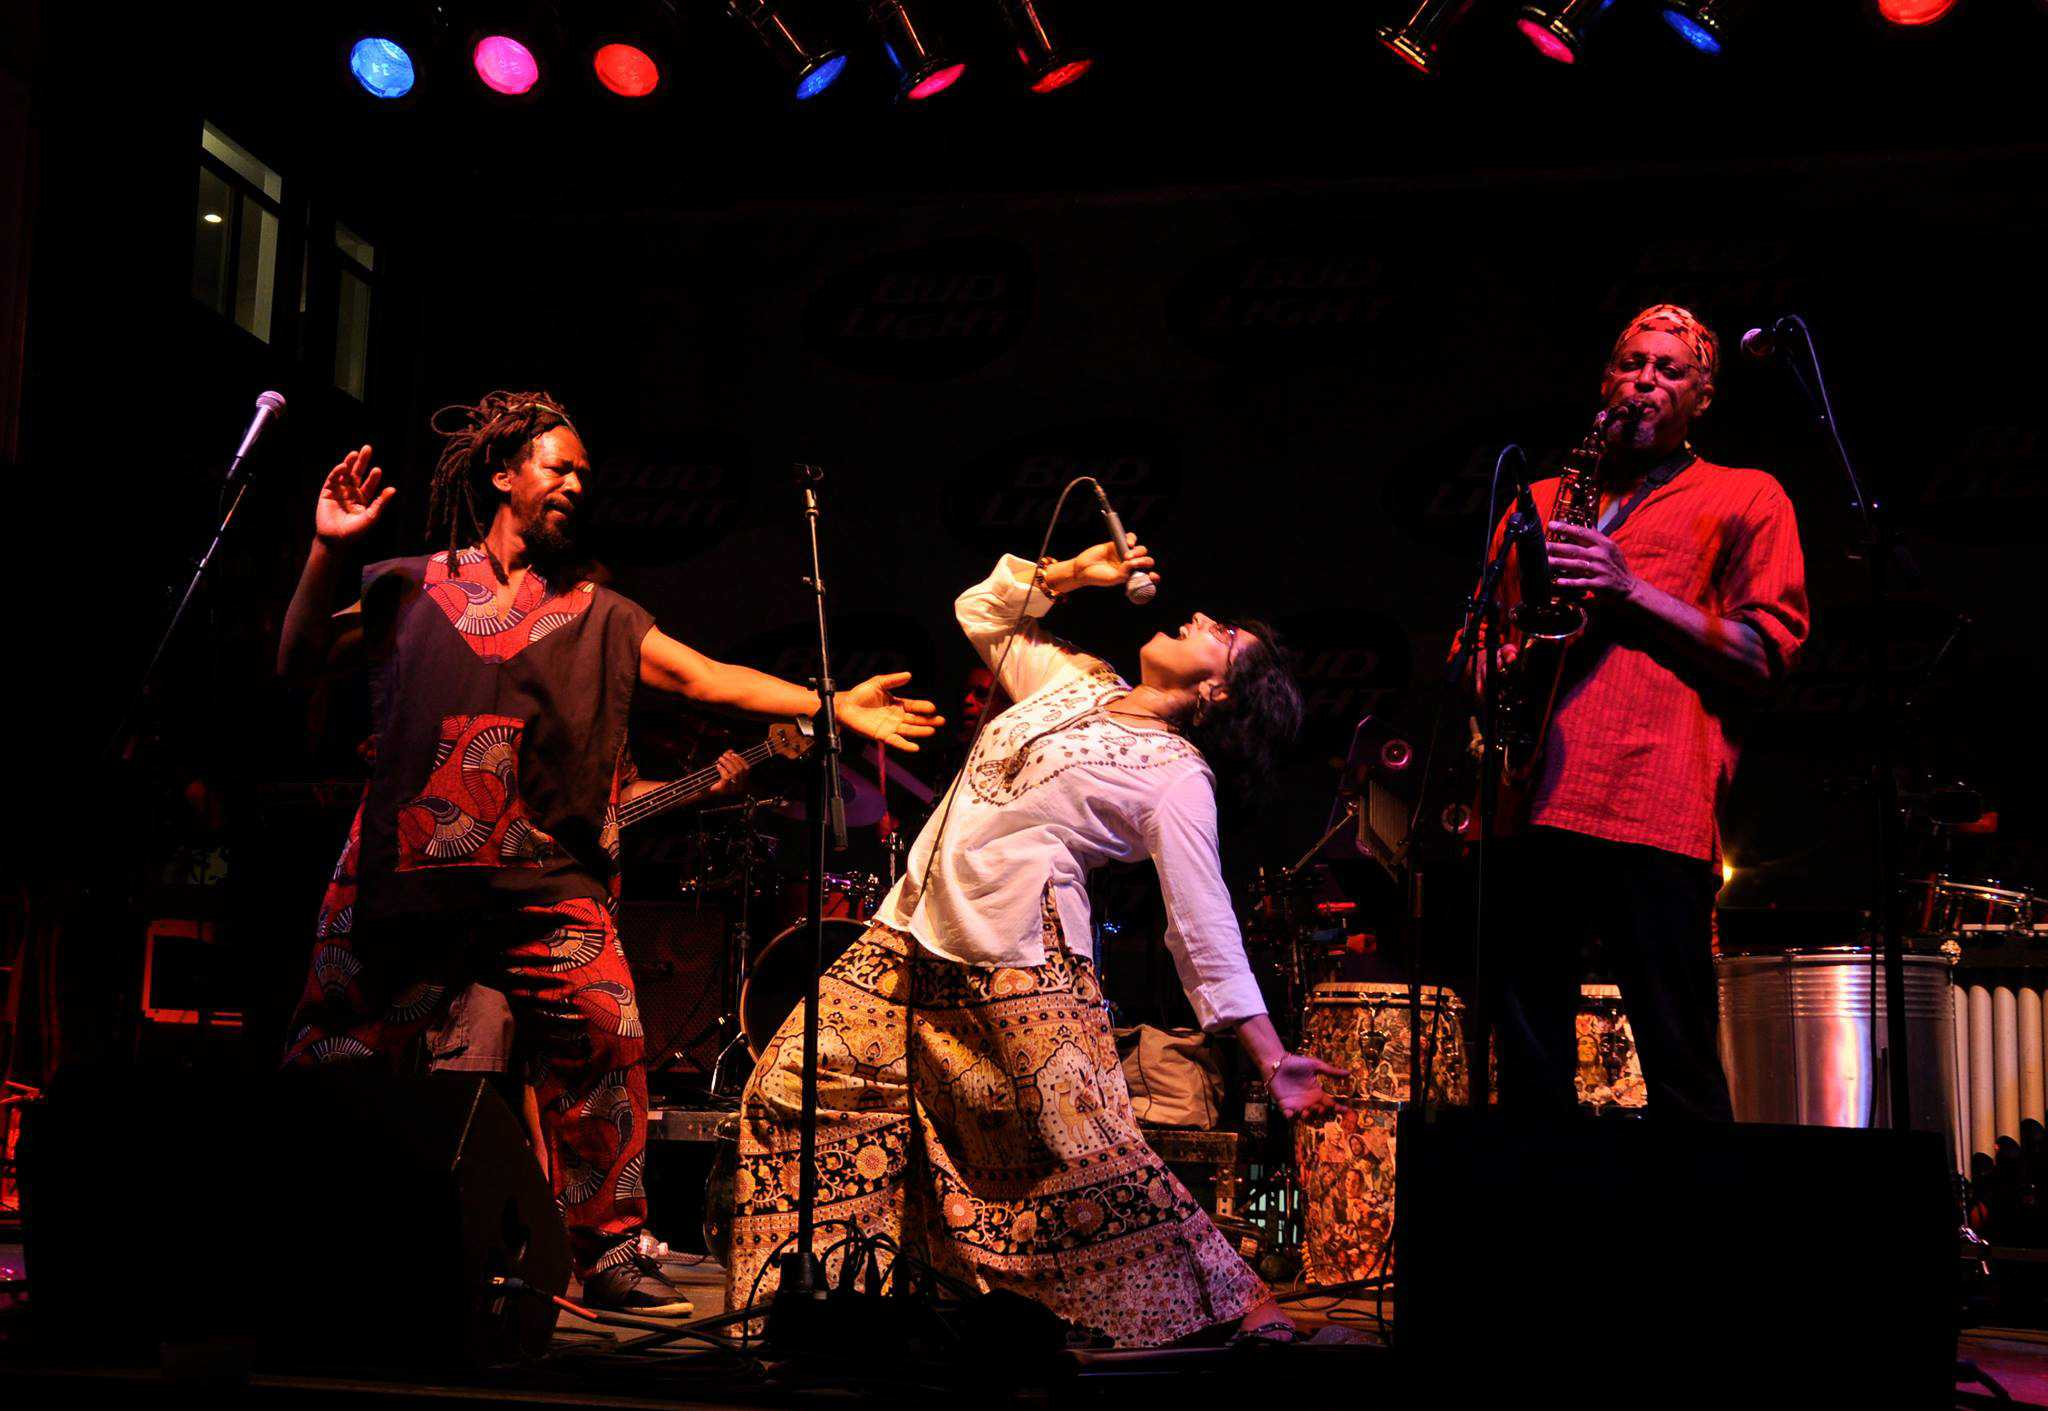 Three members of Funkadesi perform at a past Krannert event. Funkadesi will perform at 5 p.m. at Foellinger Great Hall on Tuesday as part of the University's Sesquicentennial celebration. The event is free but the University is asking guests to RSVP online ahead of time. The group offers a diverse sound, merging Indian music such as bhangra, Bollywood and Indian folk with a reggae, funk and Afro-Caribbean groove.